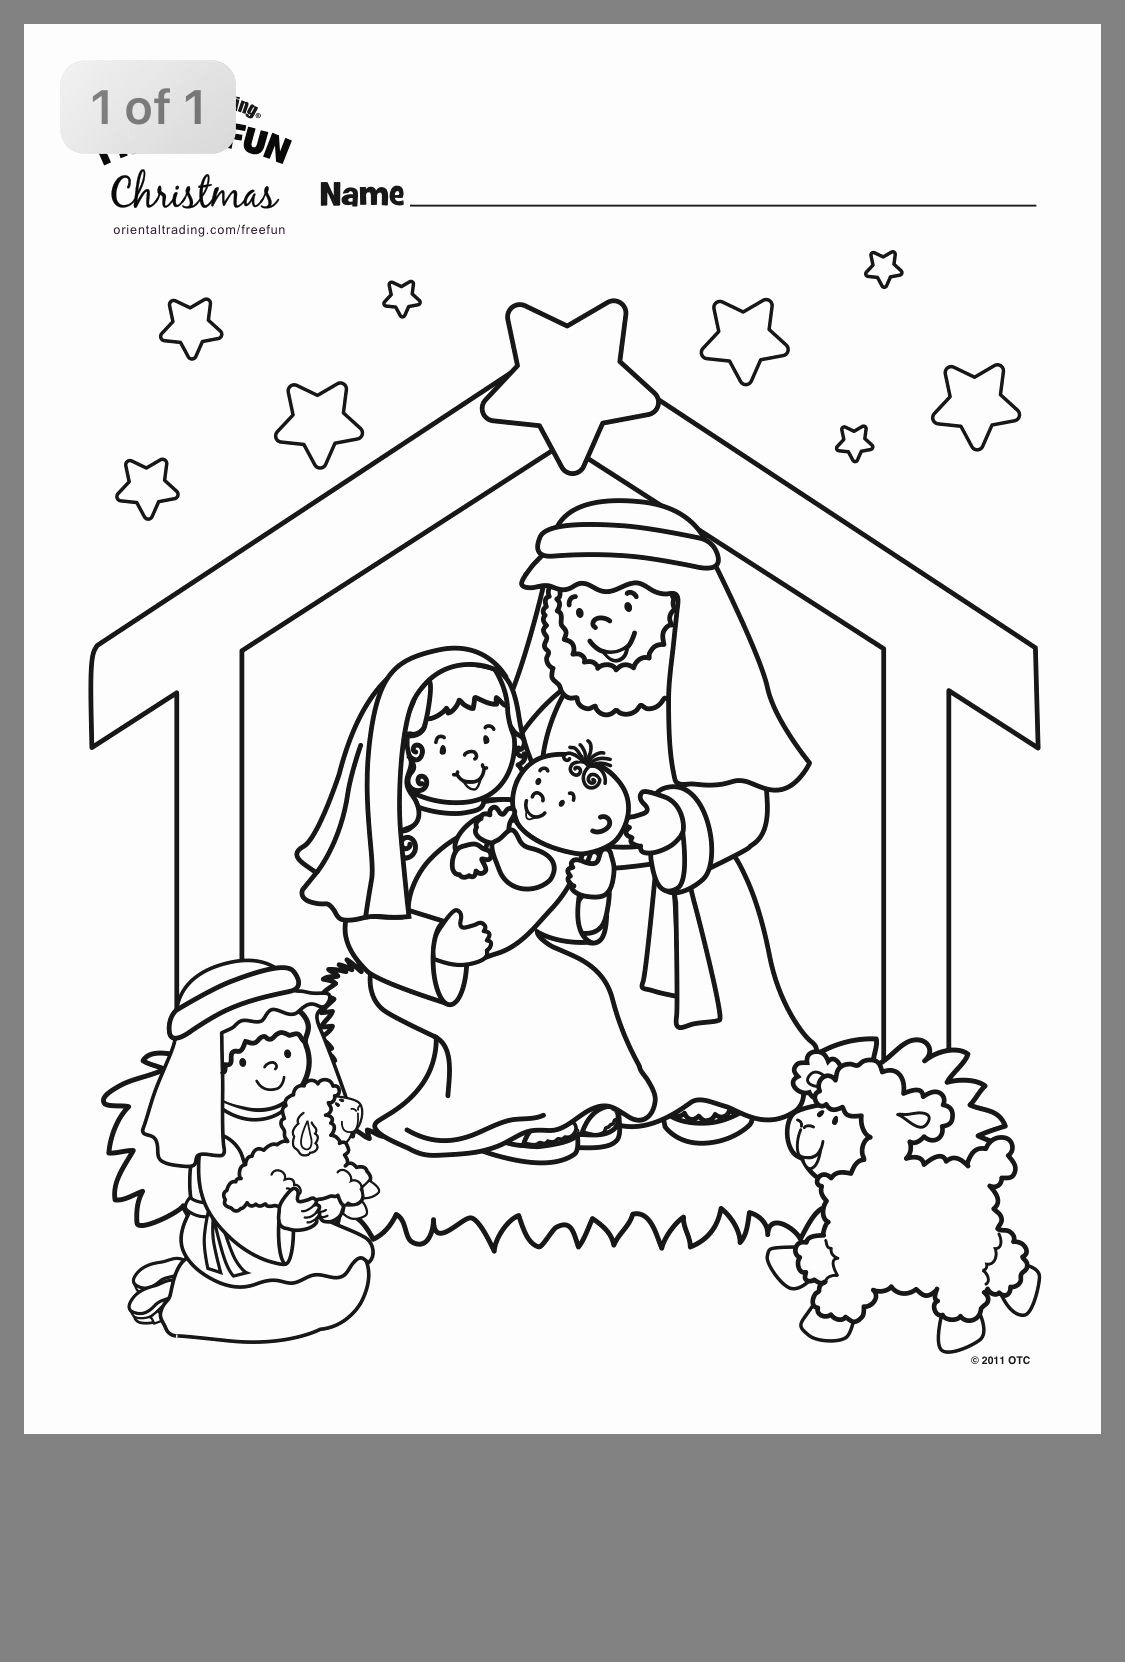 Pin By Geraima On Rozhdestvenskie Podelki In 2020 Christmas Sunday School Crafts Christmas Crafts For Kids To Make Nativity Coloring